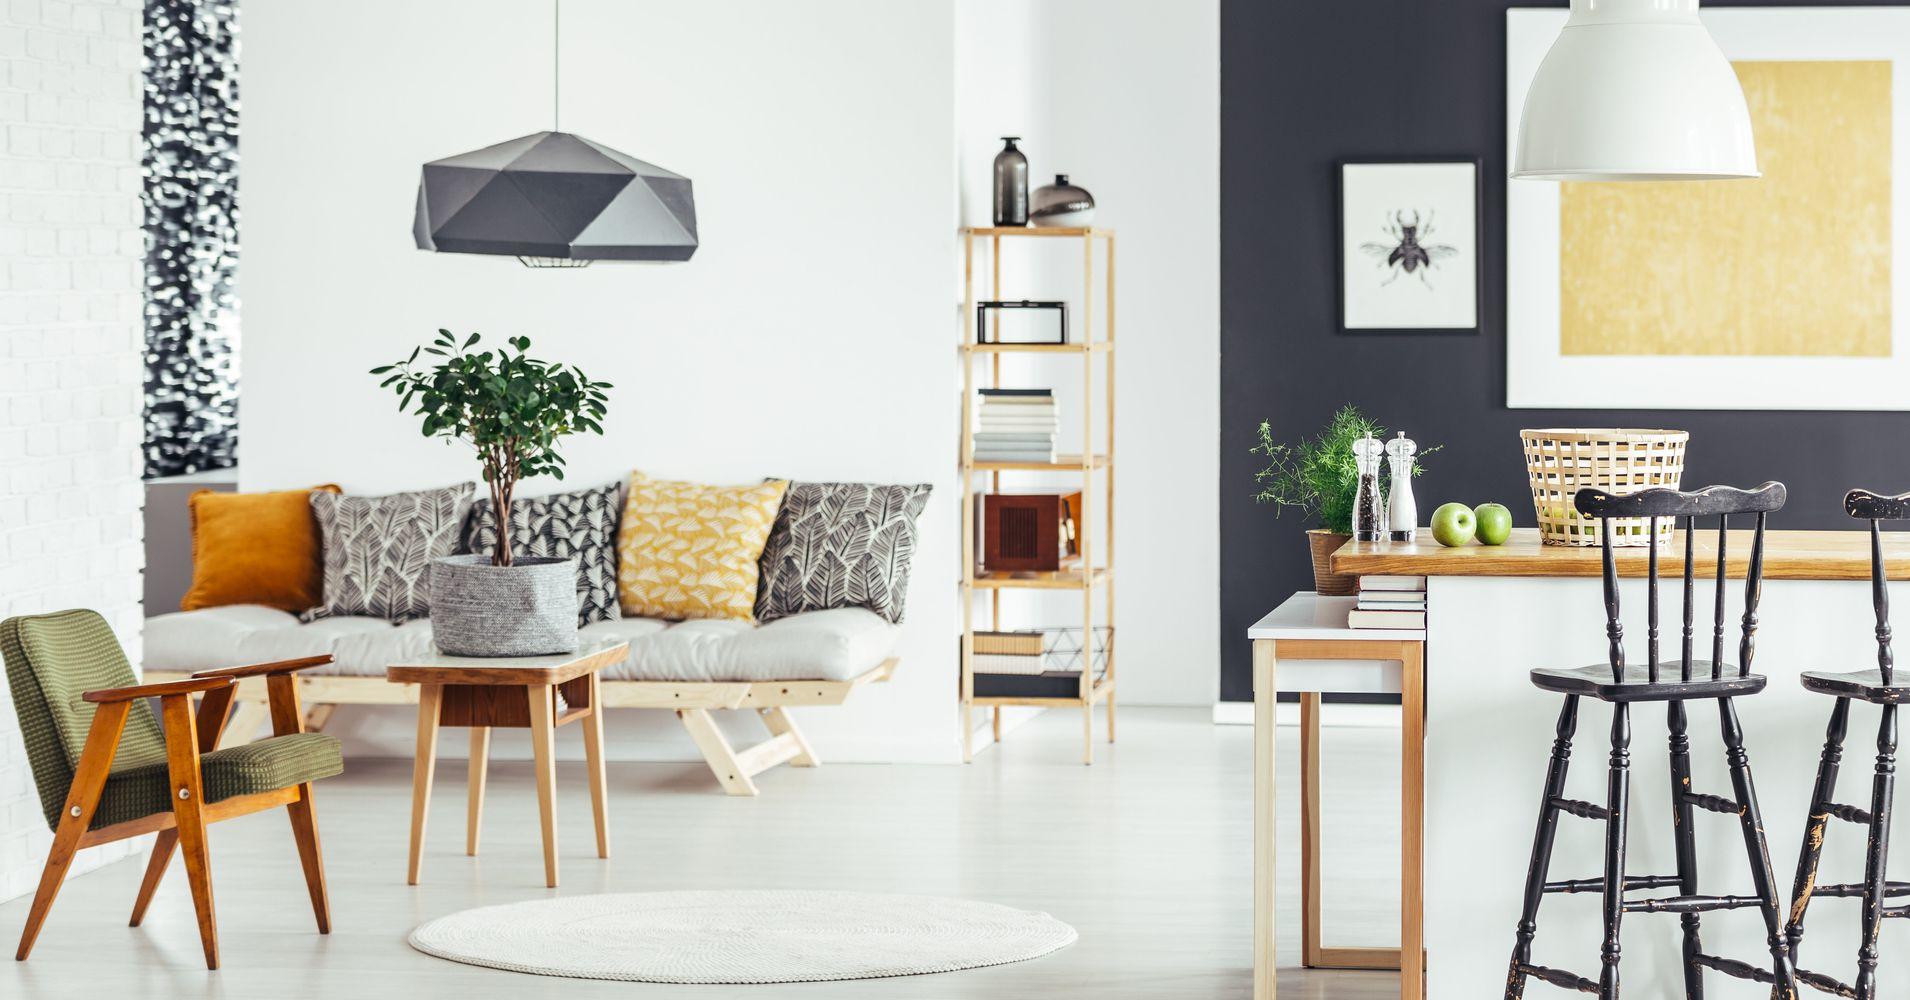 The 42 best websites for furniture and decor that make decorating easy huffpost life